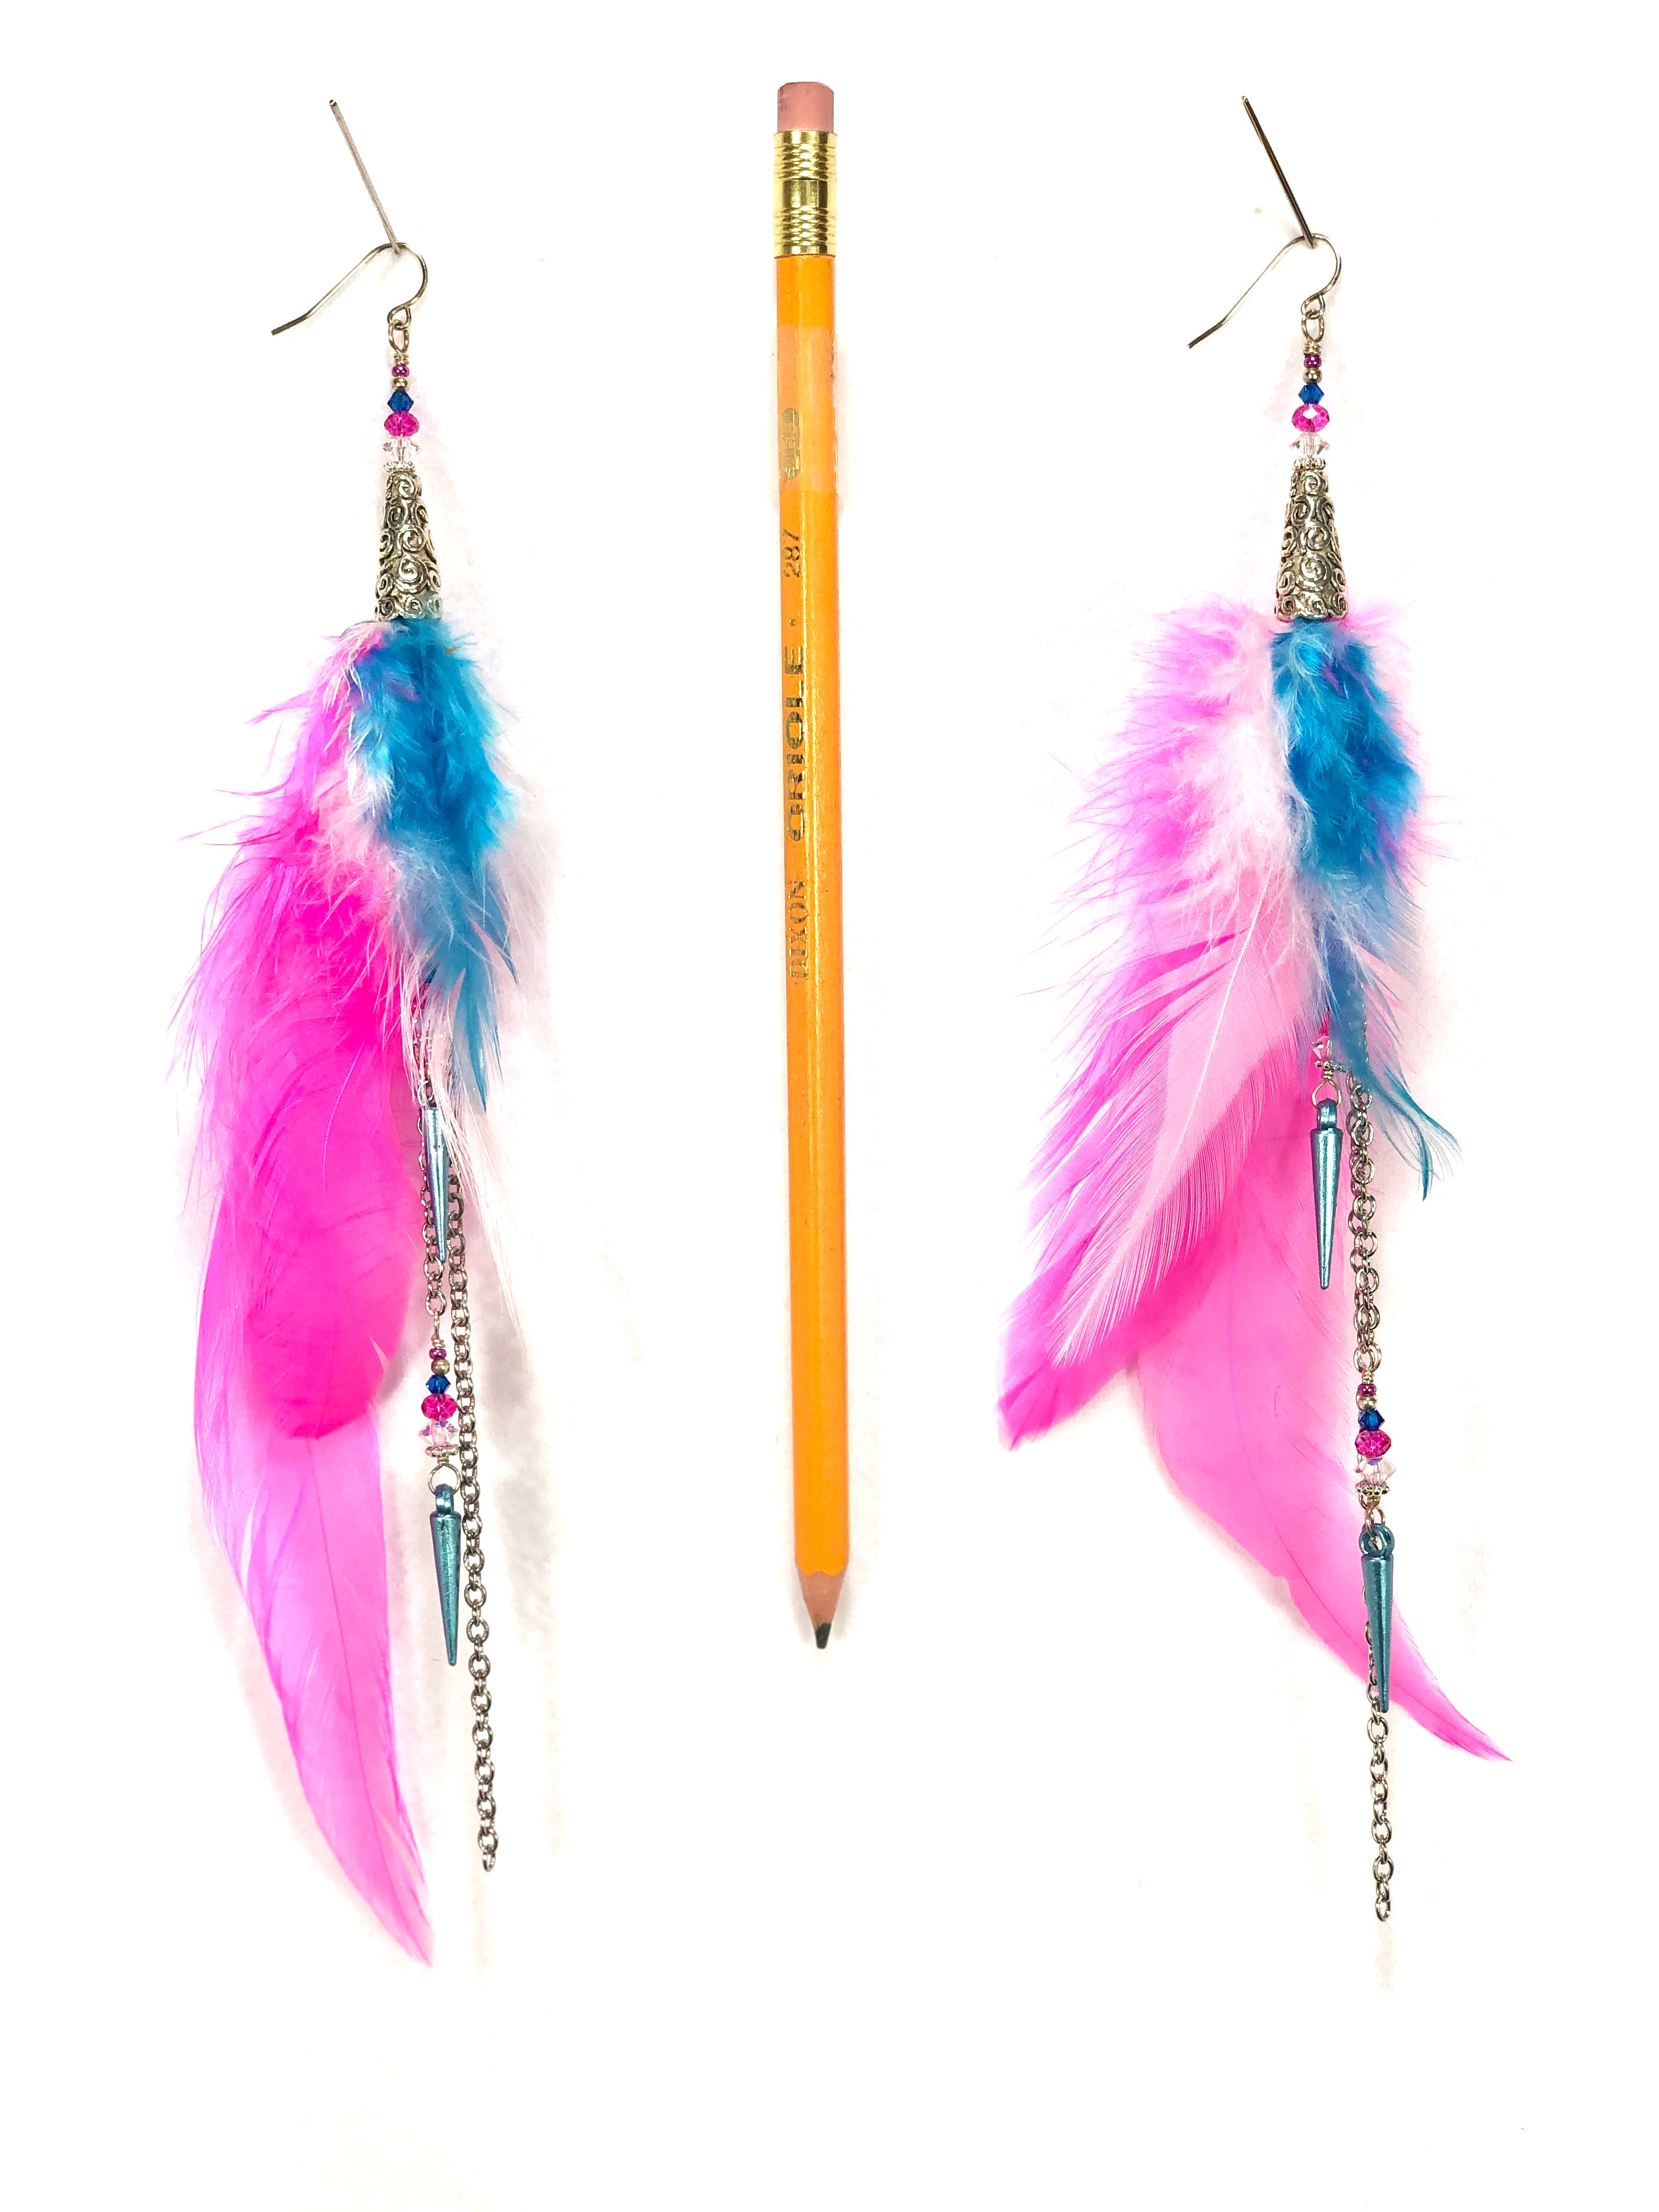 ER10 buy it now pair of feather earrings in pink, white, and turquoise feather with silver accents.